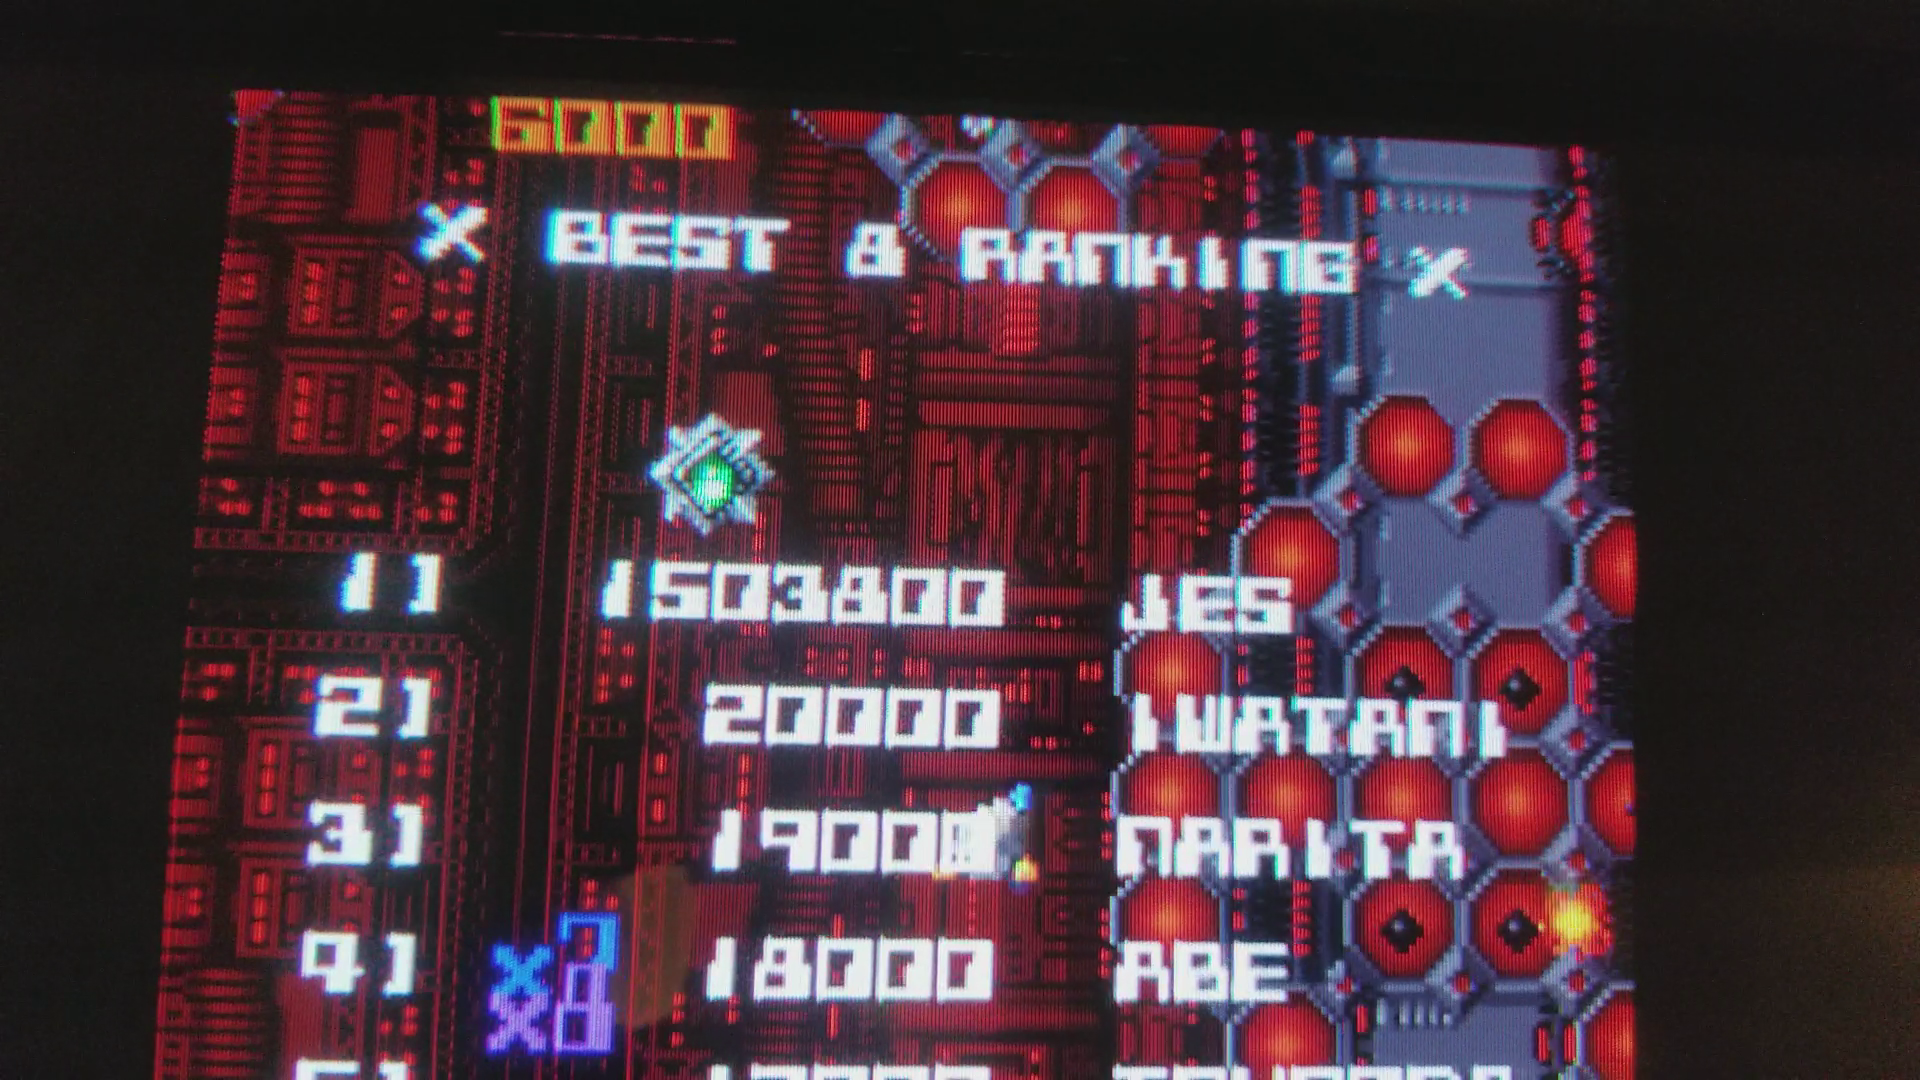 JES: Omega Fighter [omegaf] (Arcade Emulated / M.A.M.E.) 1,503,800 points on 2018-02-22 22:08:17